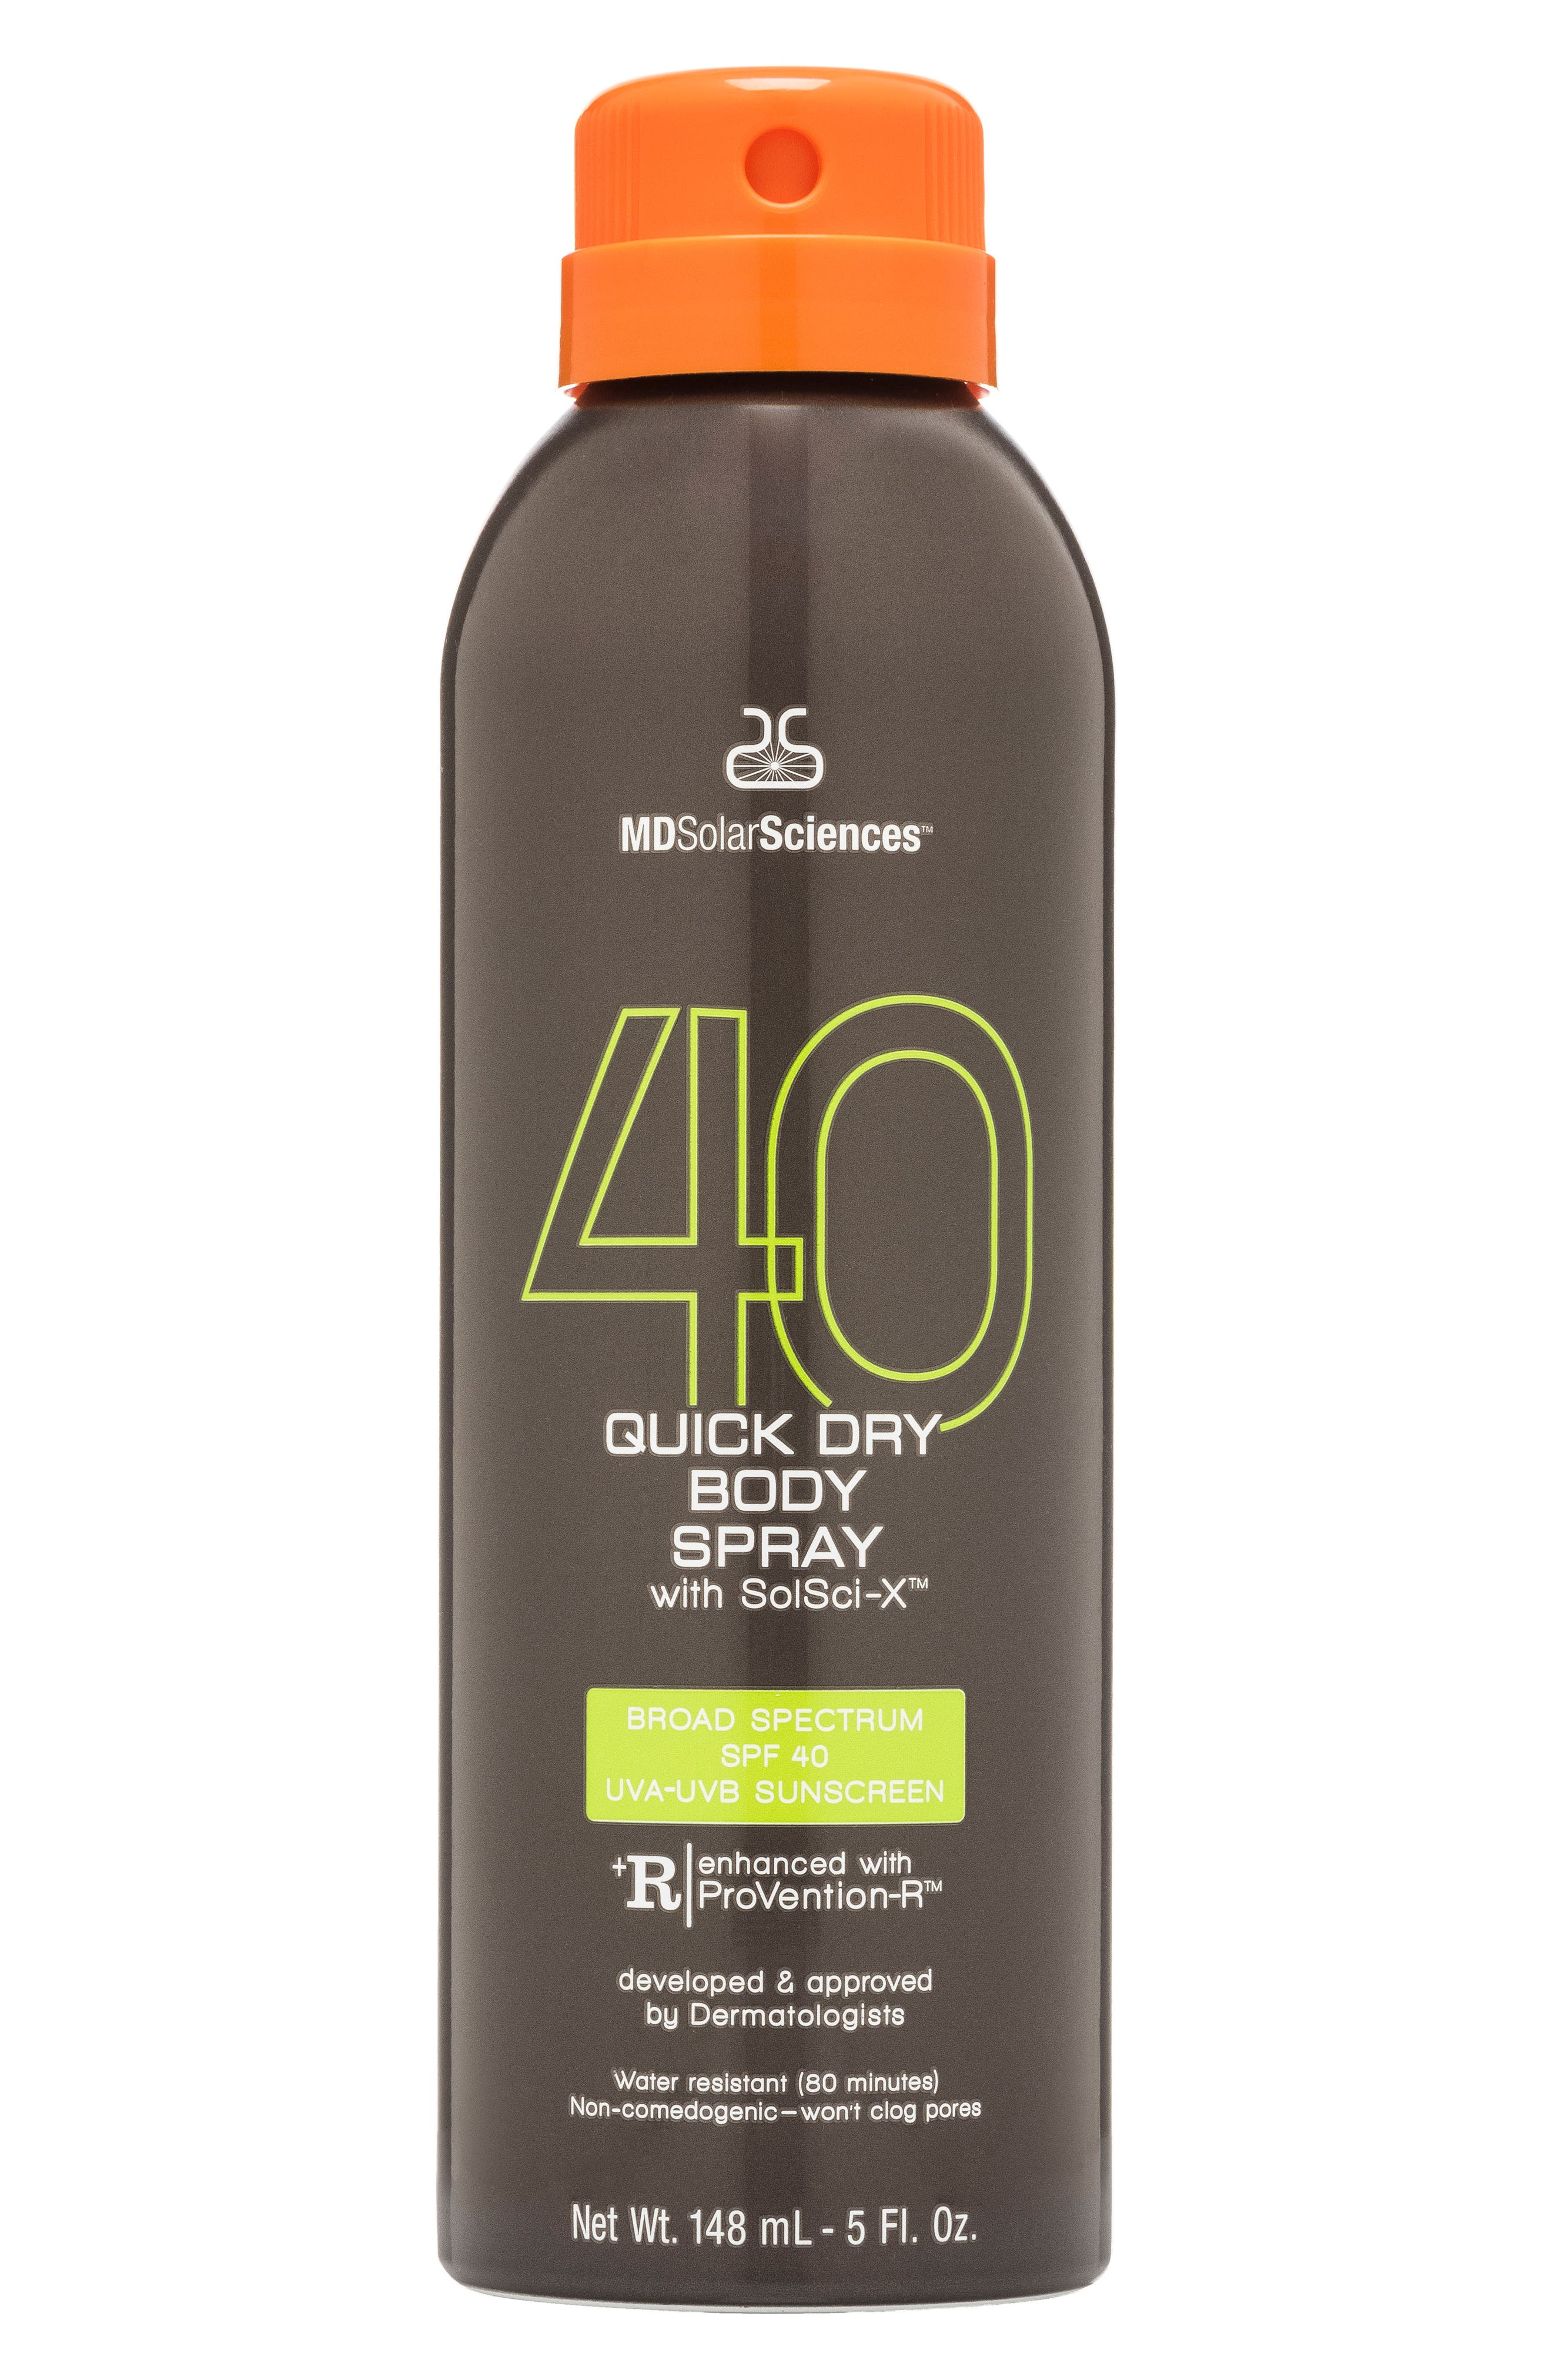 MDSolarSciences™ Quick Dry Body Spray Broad Spectrum SPF 40 Sunscreen